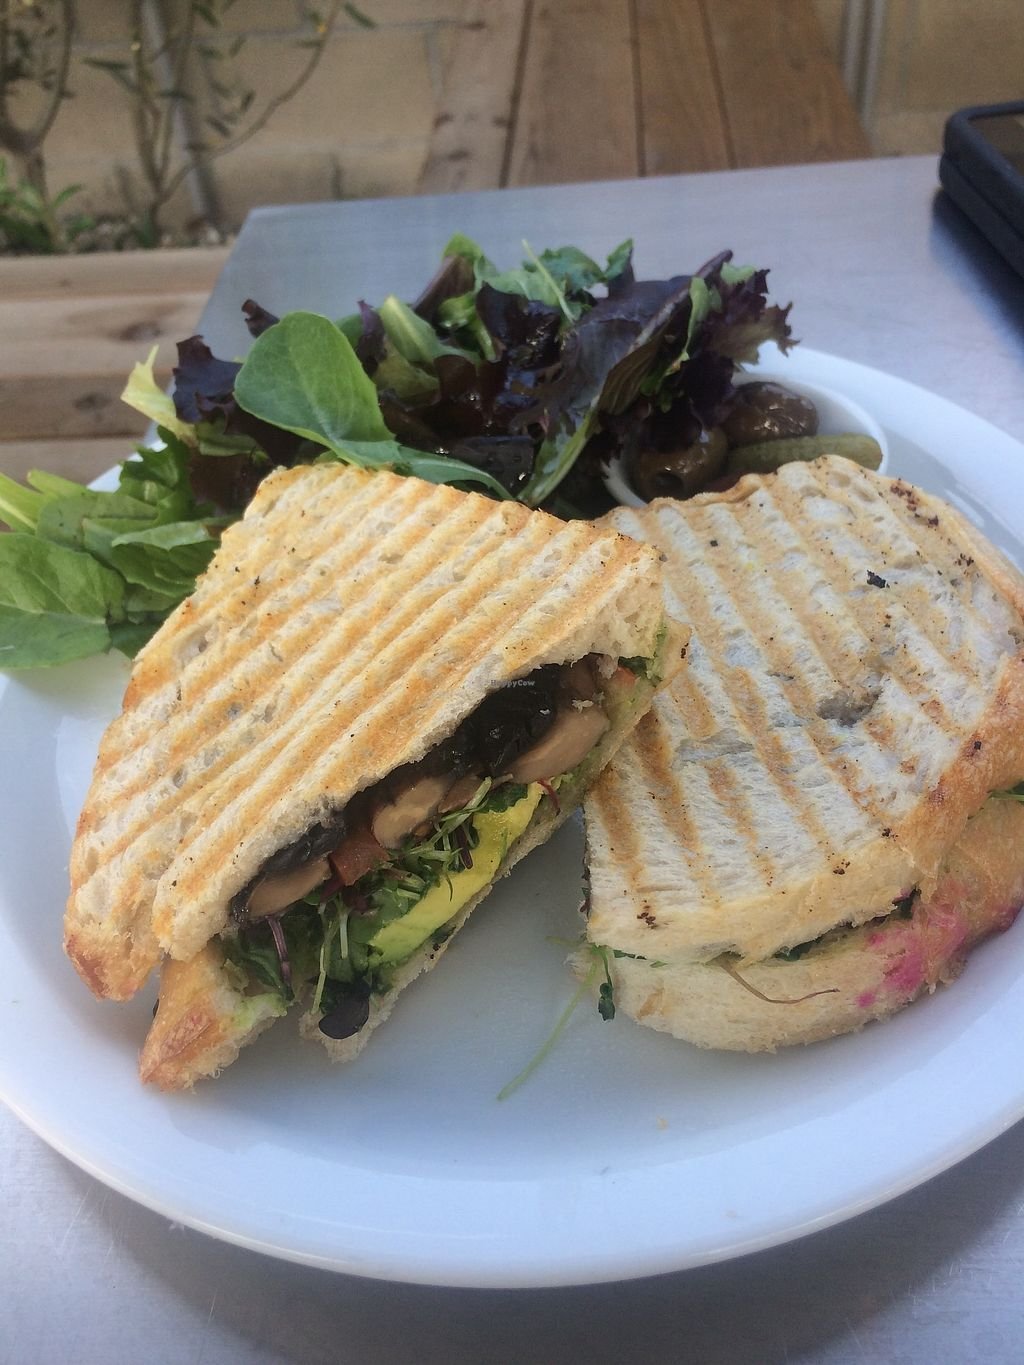 "Photo of Cafe Smitten  by <a href=""/members/profile/glassesgirl79"">glassesgirl79</a> <br/>Vegan portobello mushroom sandwich with salad <br/> December 17, 2017  - <a href='/contact/abuse/image/107421/336651'>Report</a>"